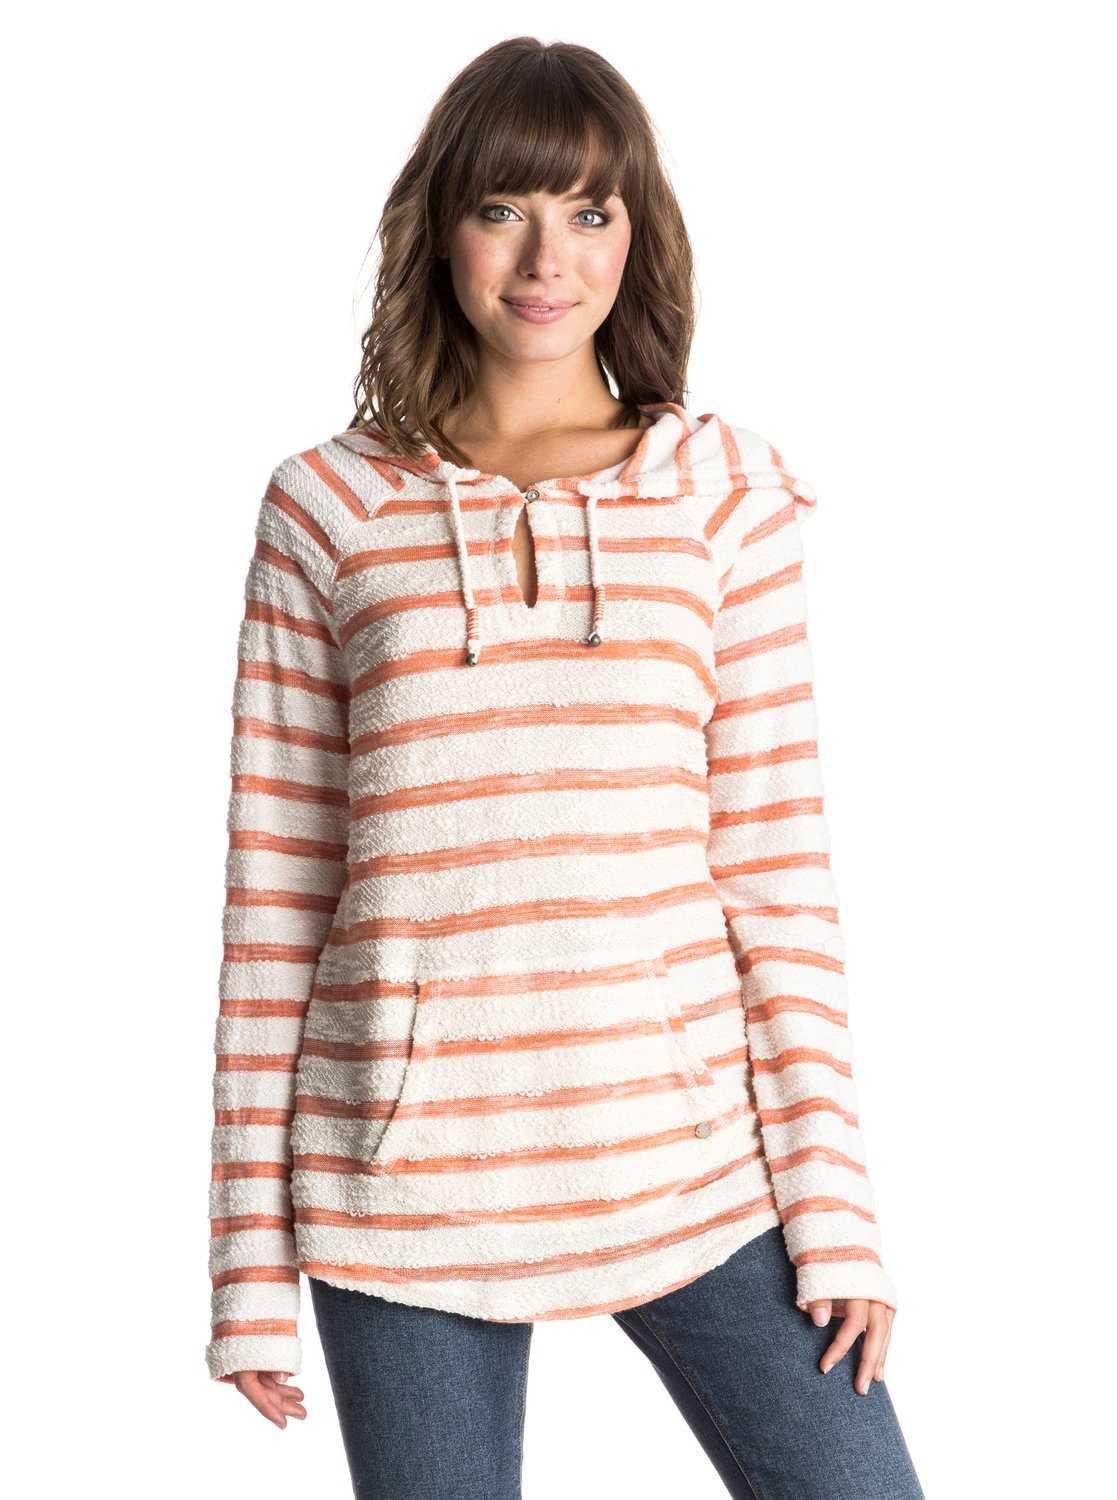 adelaide-poncho-pull-over-hoodie